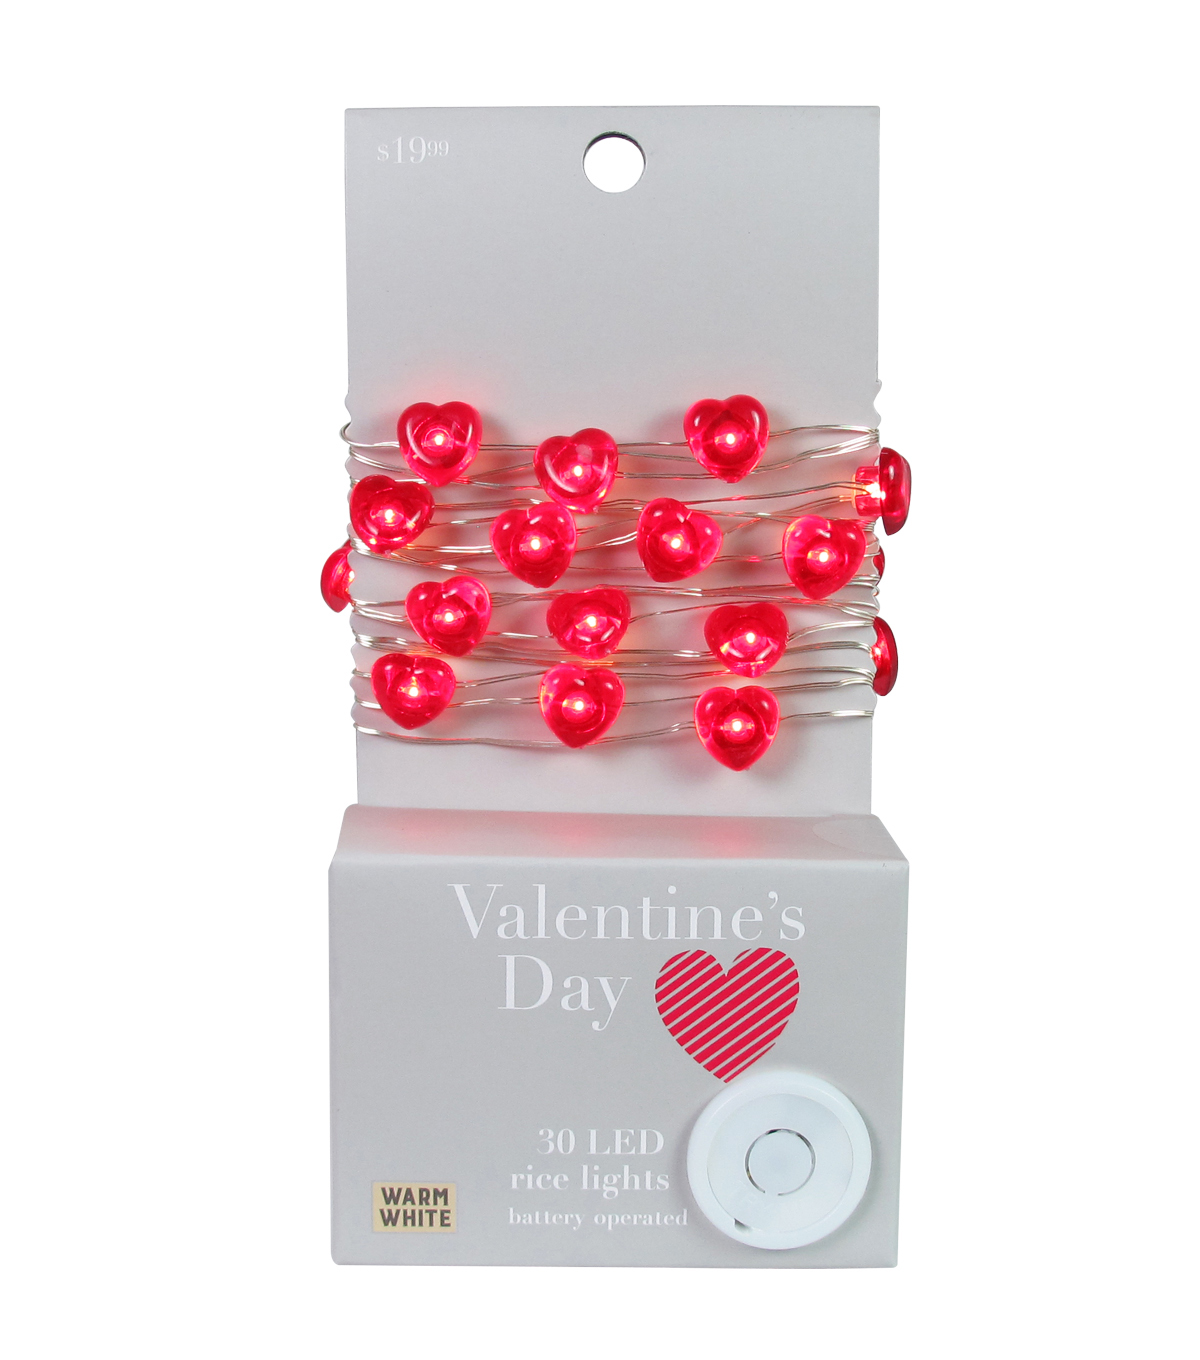 Valentine\u0027s Day Decor 30 ct Red Hearts with Warm White LED Rice Lights